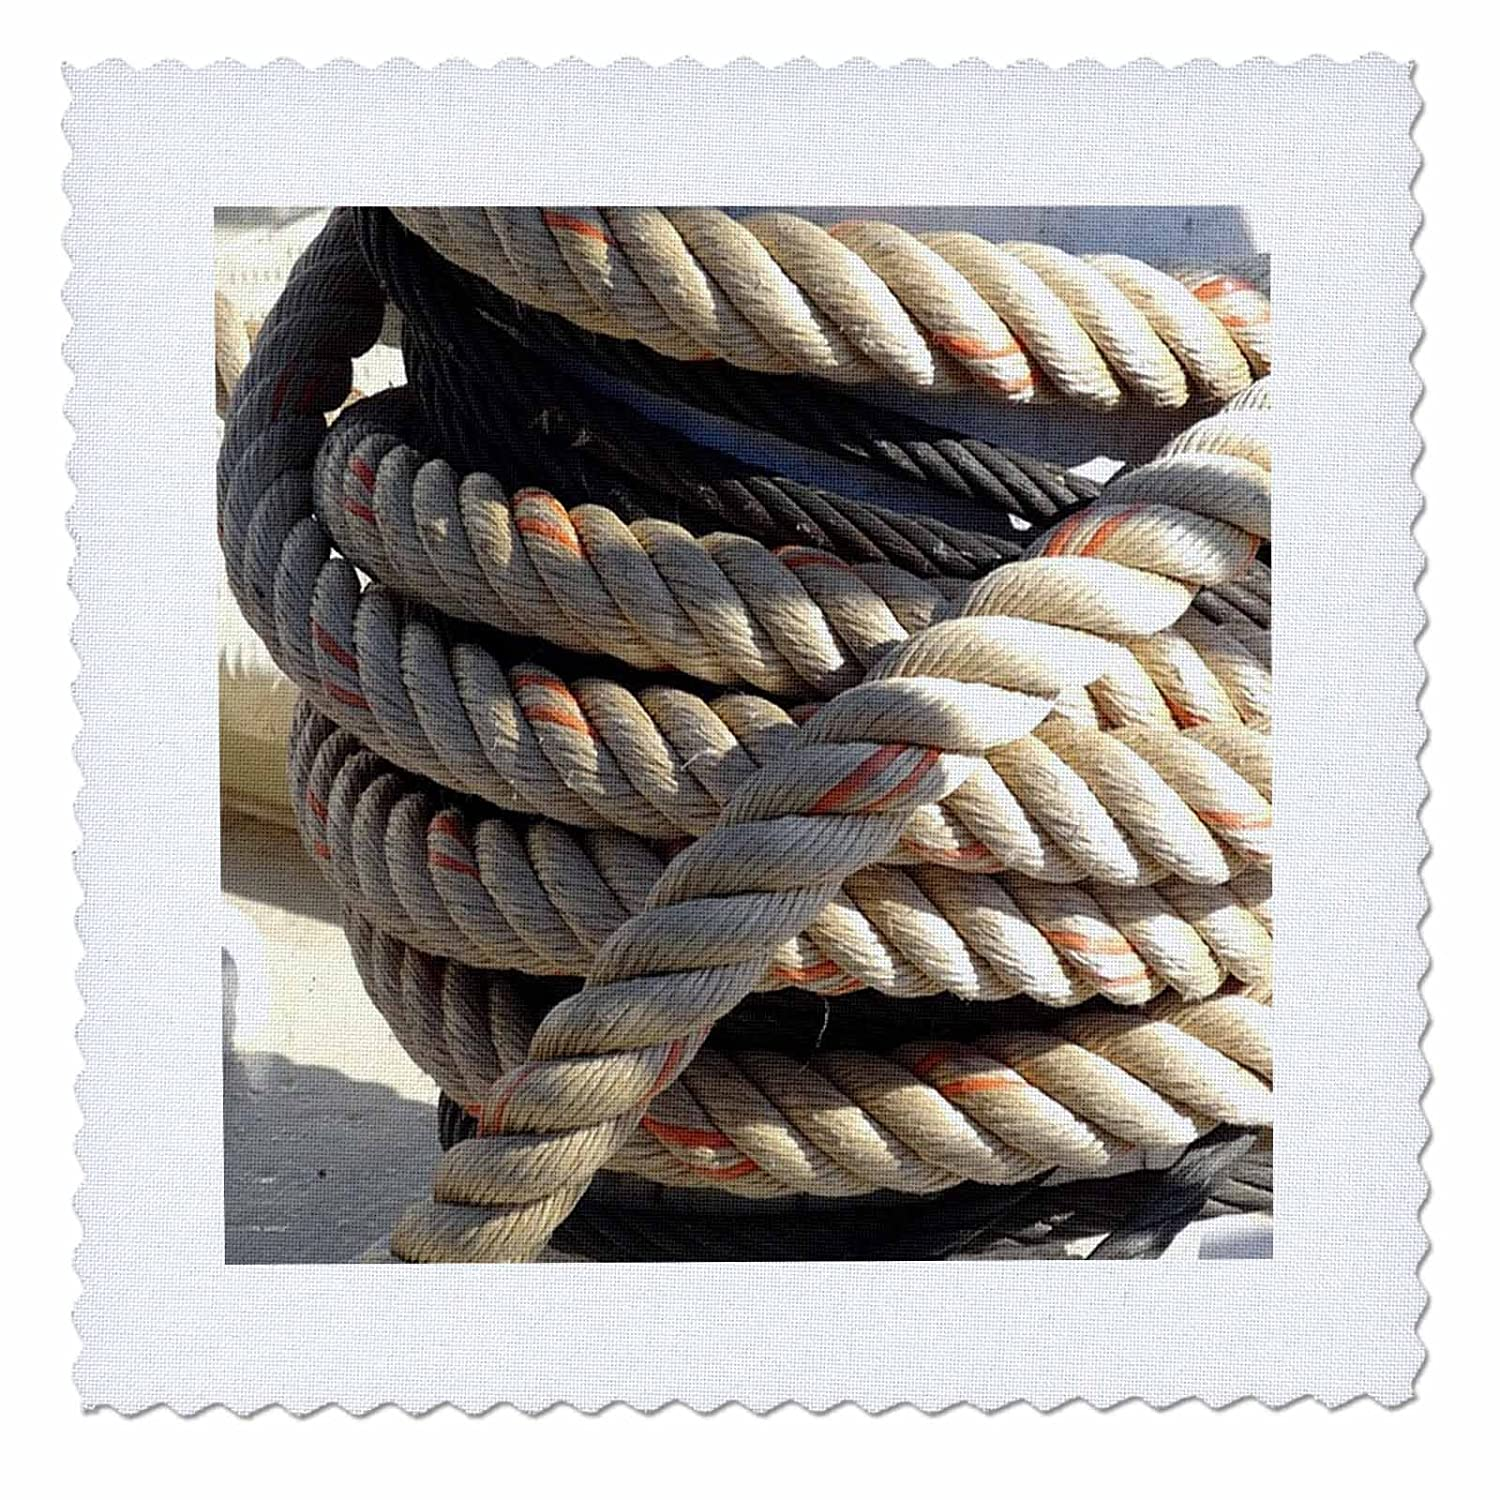 3D Rose Image of Close Up of Mooring Lines for Large Boat Square Quilt 6 x 6